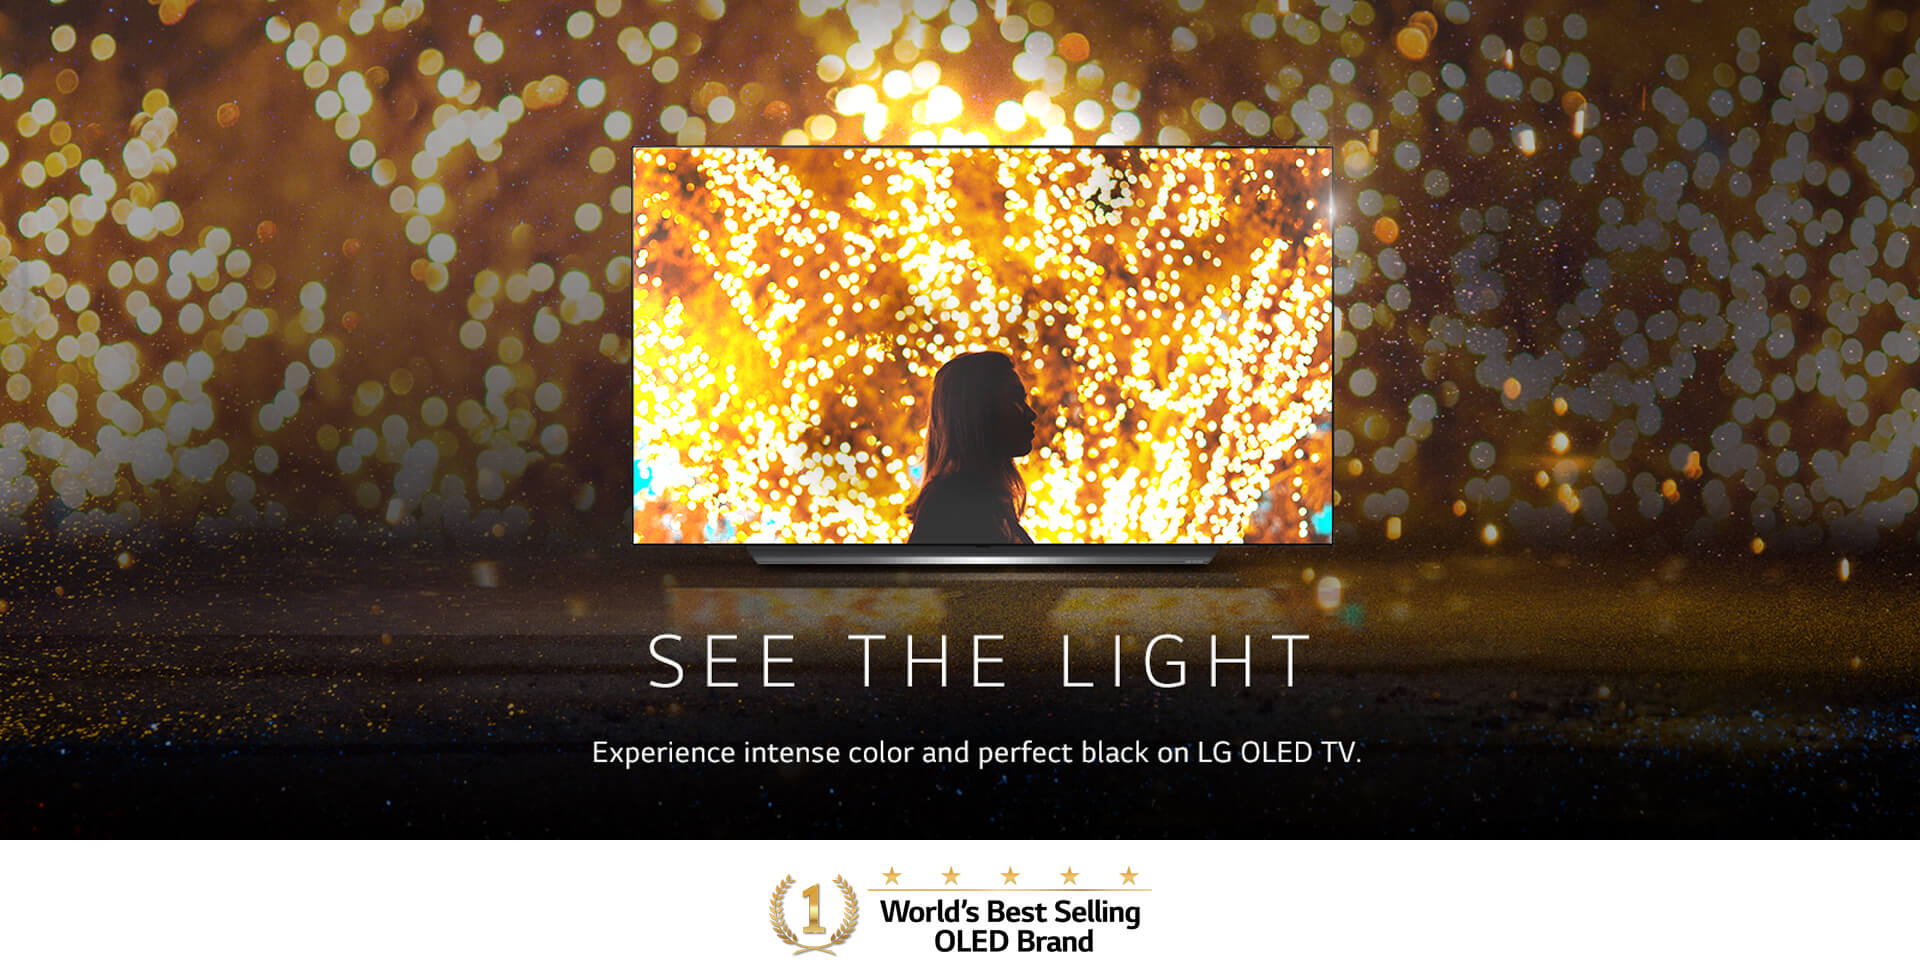 See the light. Experience intense color and perfect black on LG OLED TV. World's Best Selling OLED Brand Mark